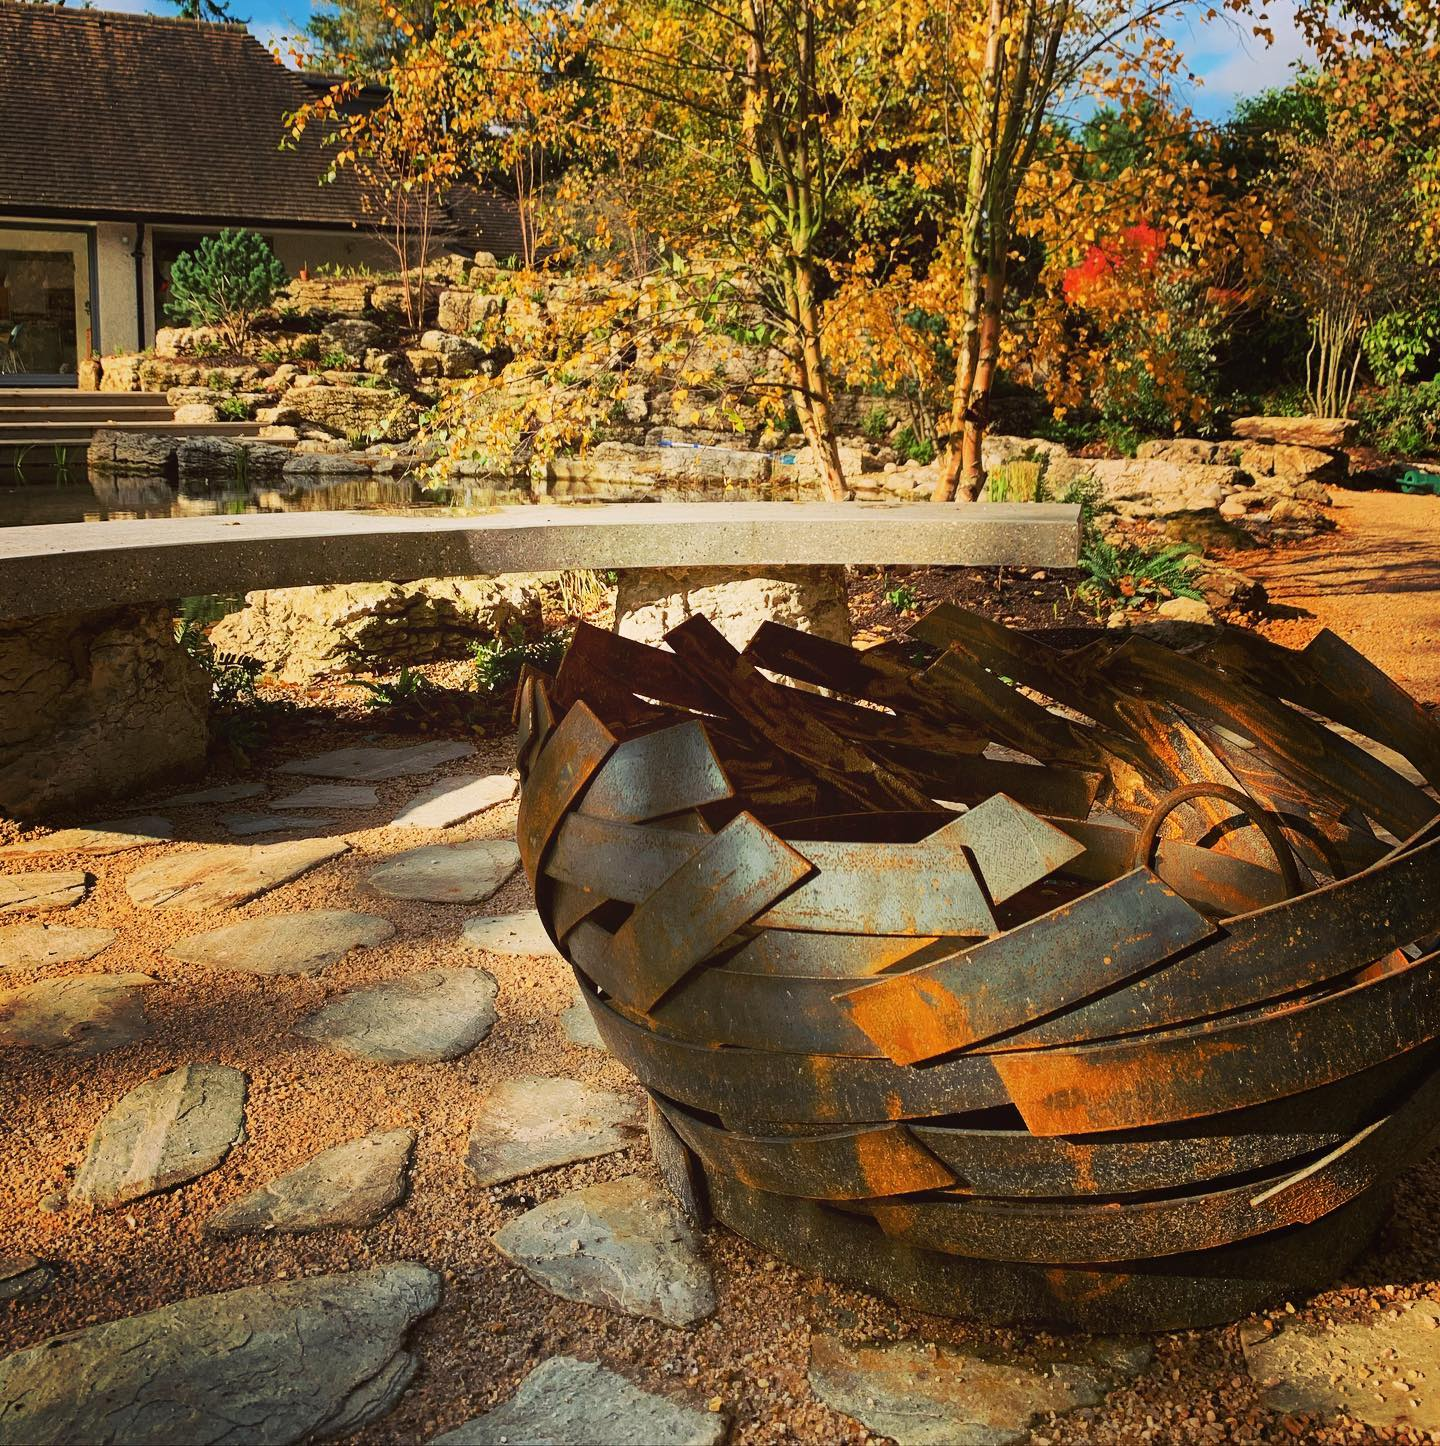 Beautiful handmade firepit by @magmafirepits in our client's garden reflecting its surroundings as it begins to take on its autumnal rusty tones... will post an update when it's fully rusted!